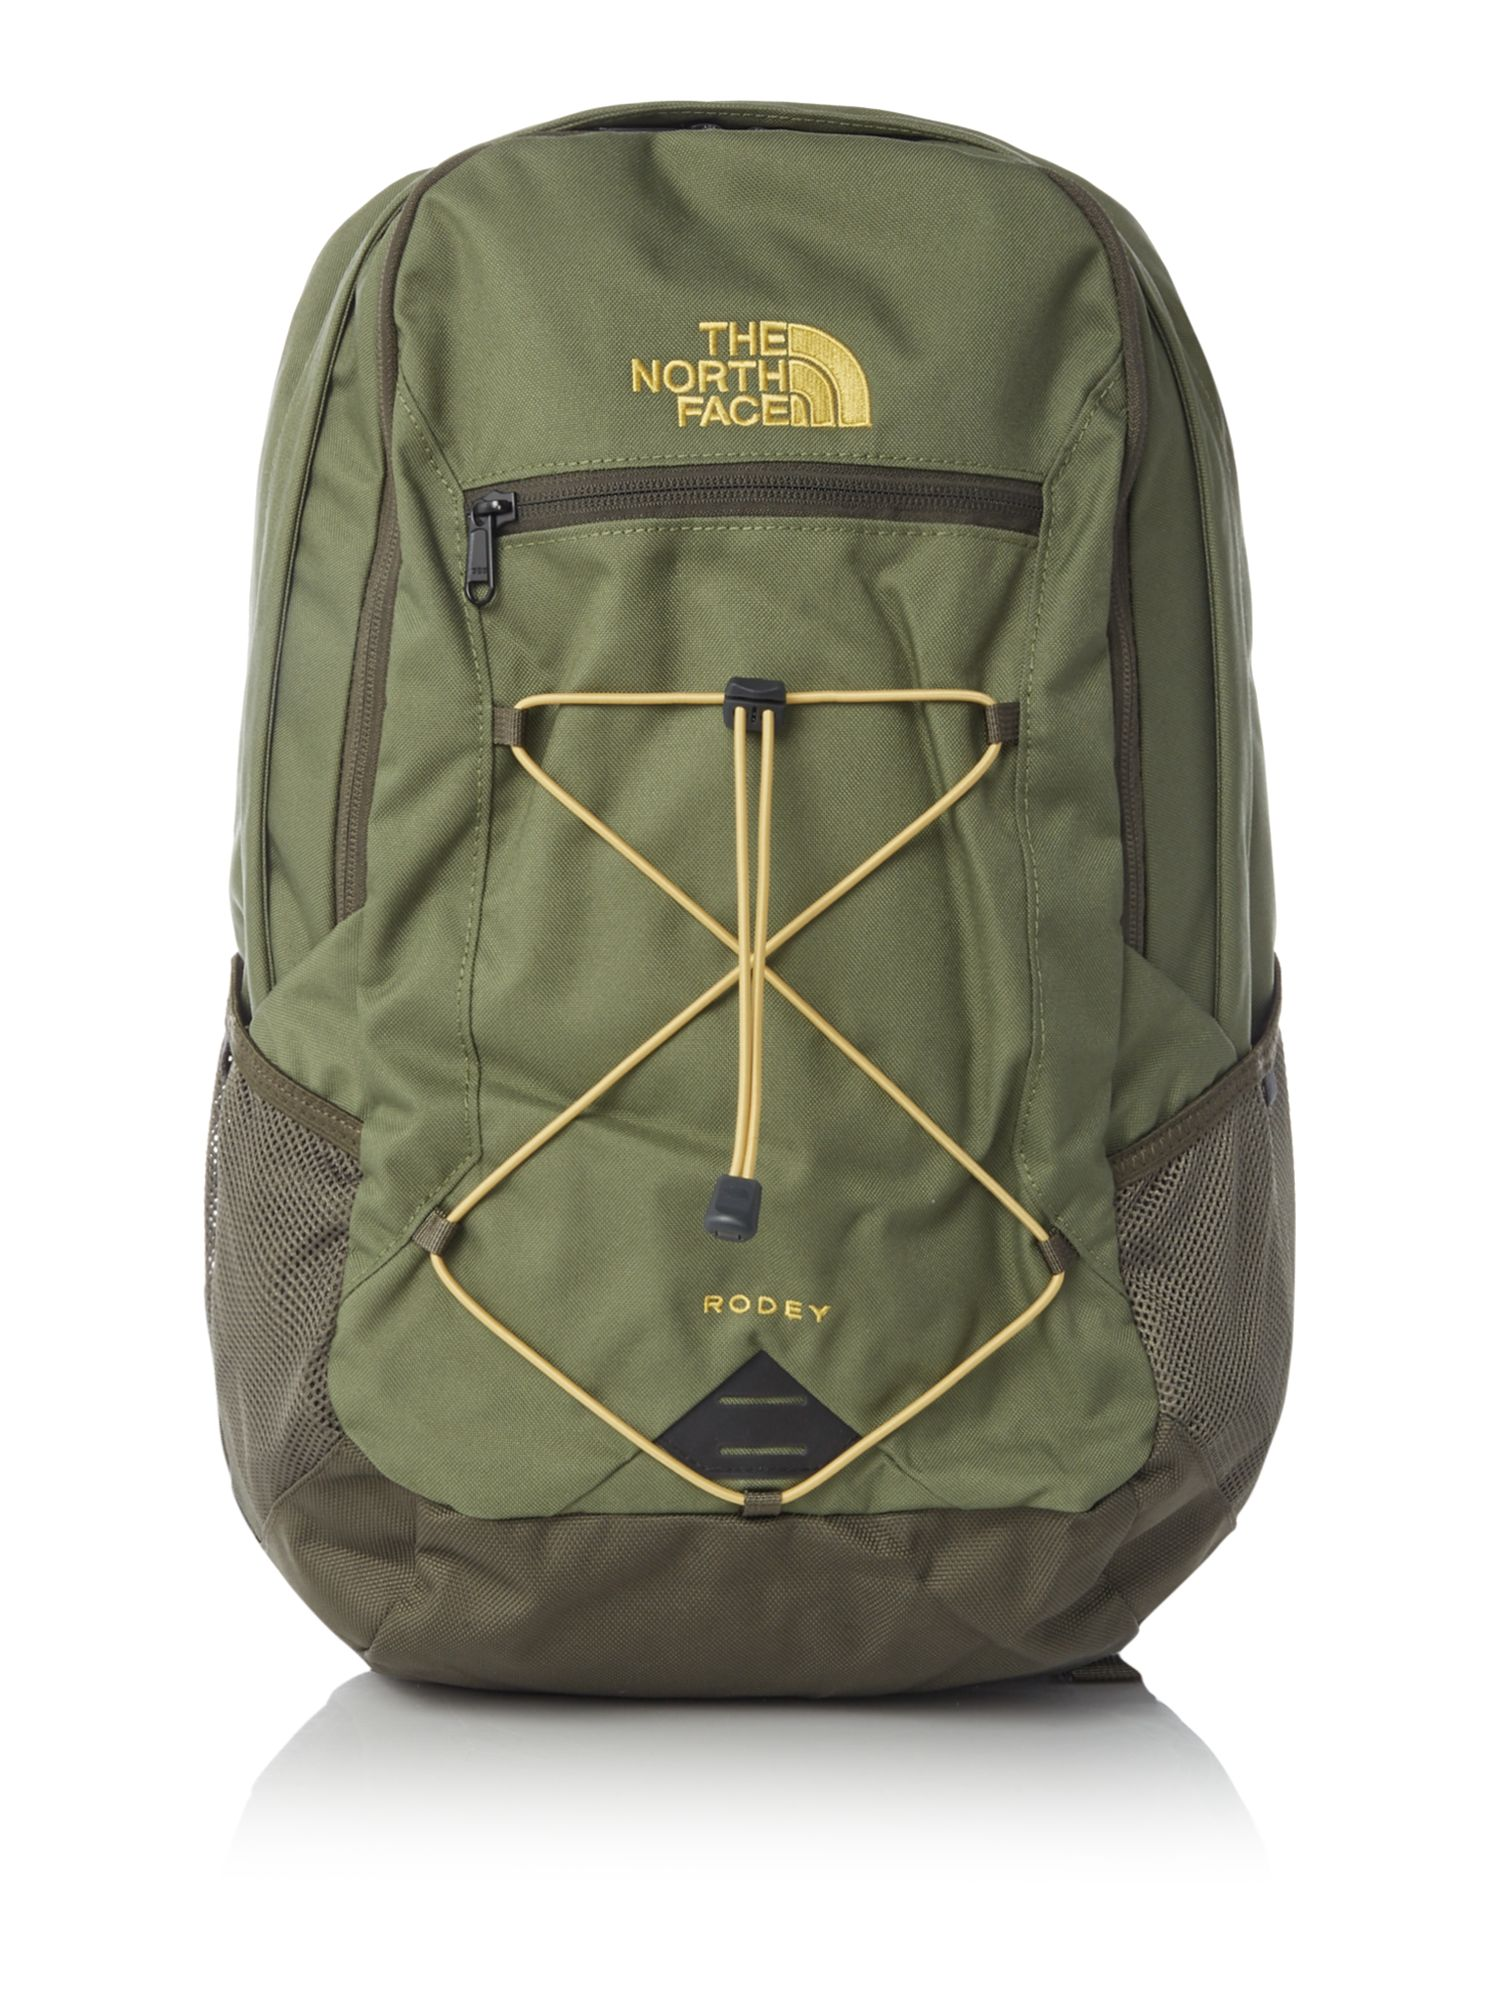 The North Face Rodey Bag, Khaki